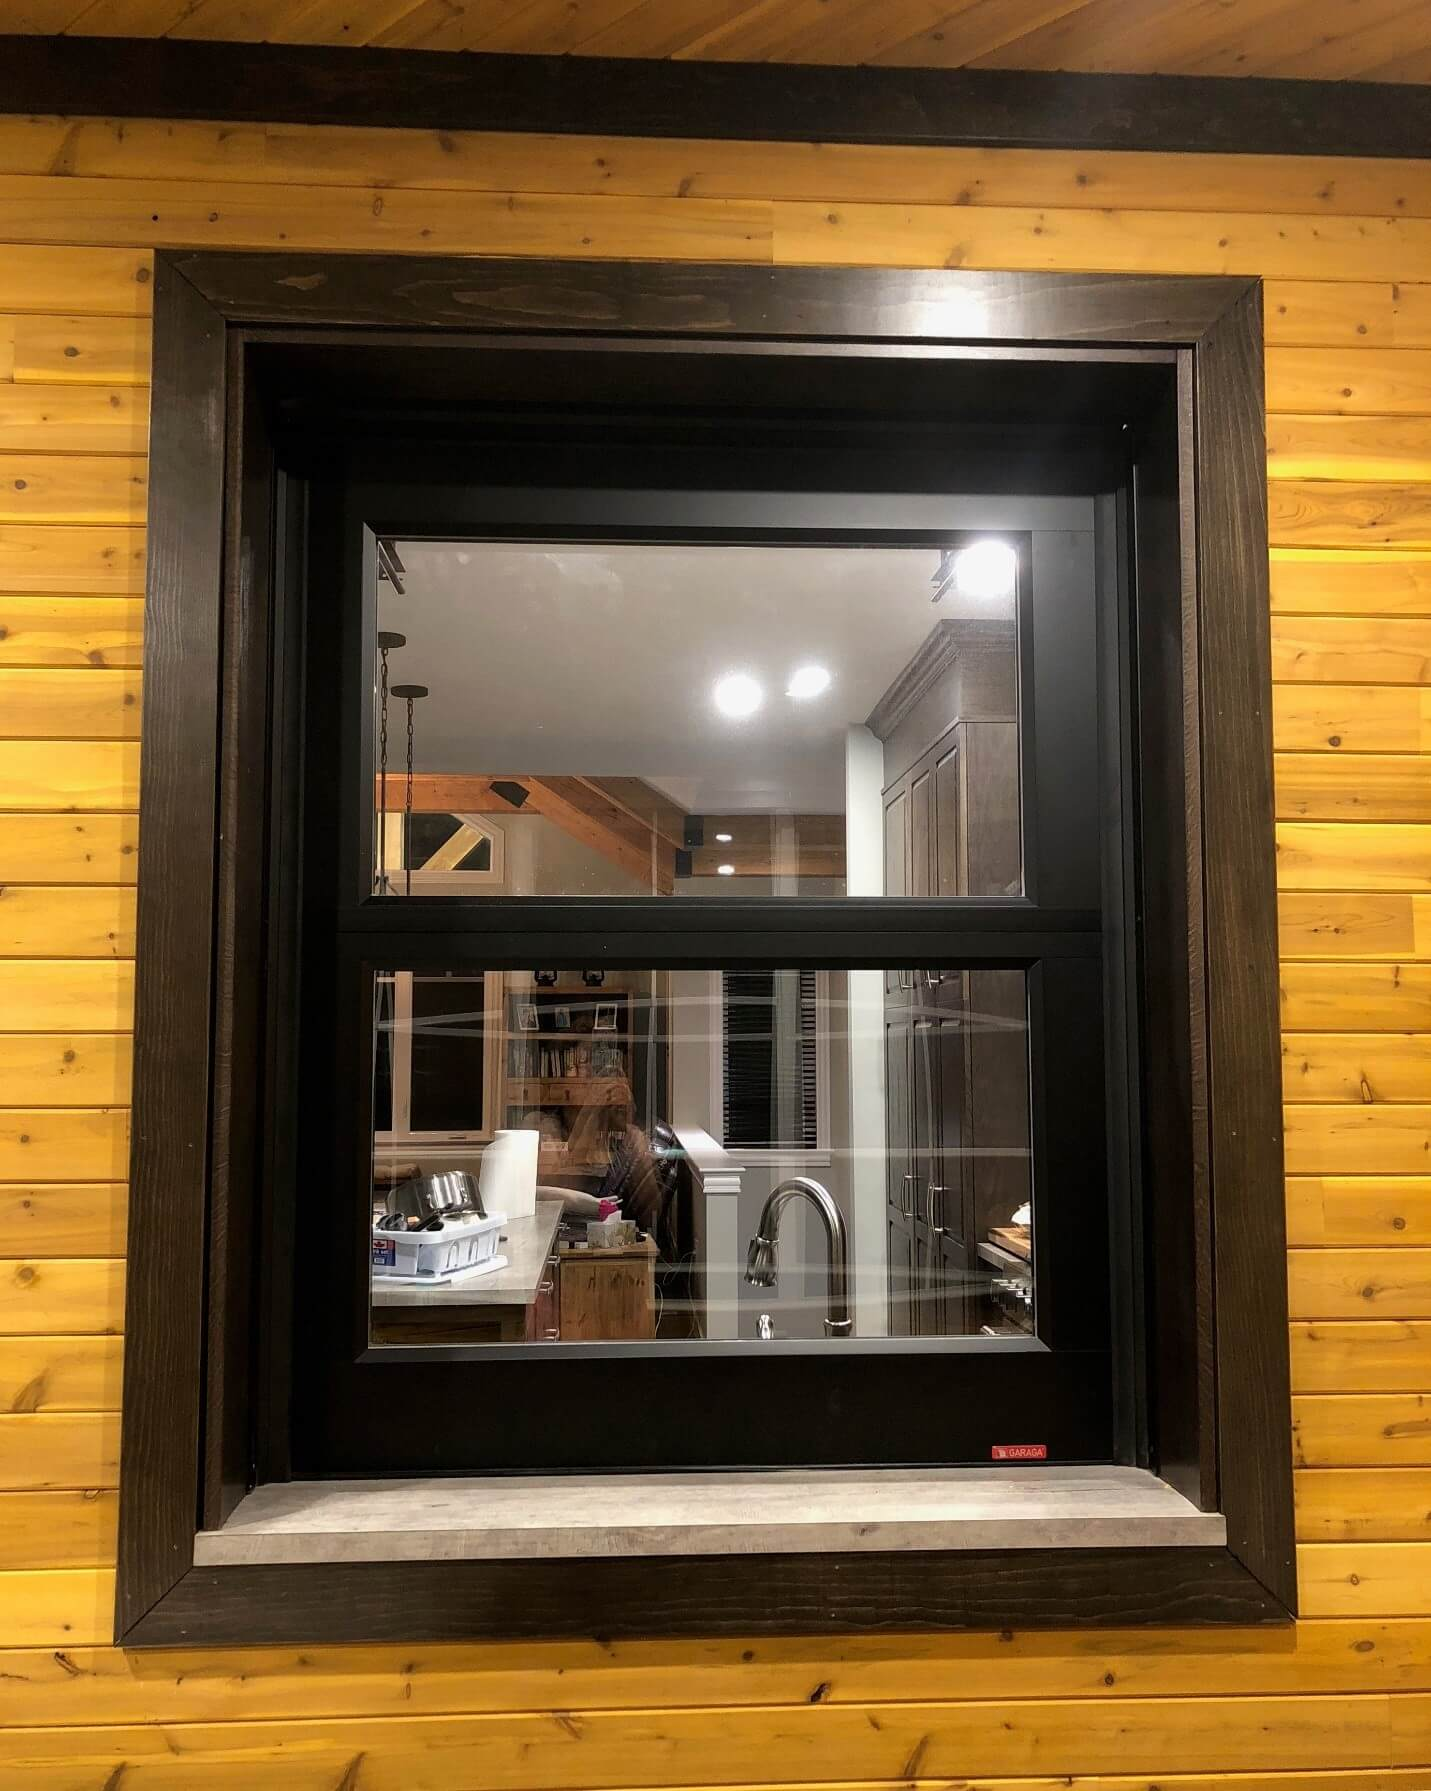 The California garage door: A look from the outside, in the 3-season sunroom